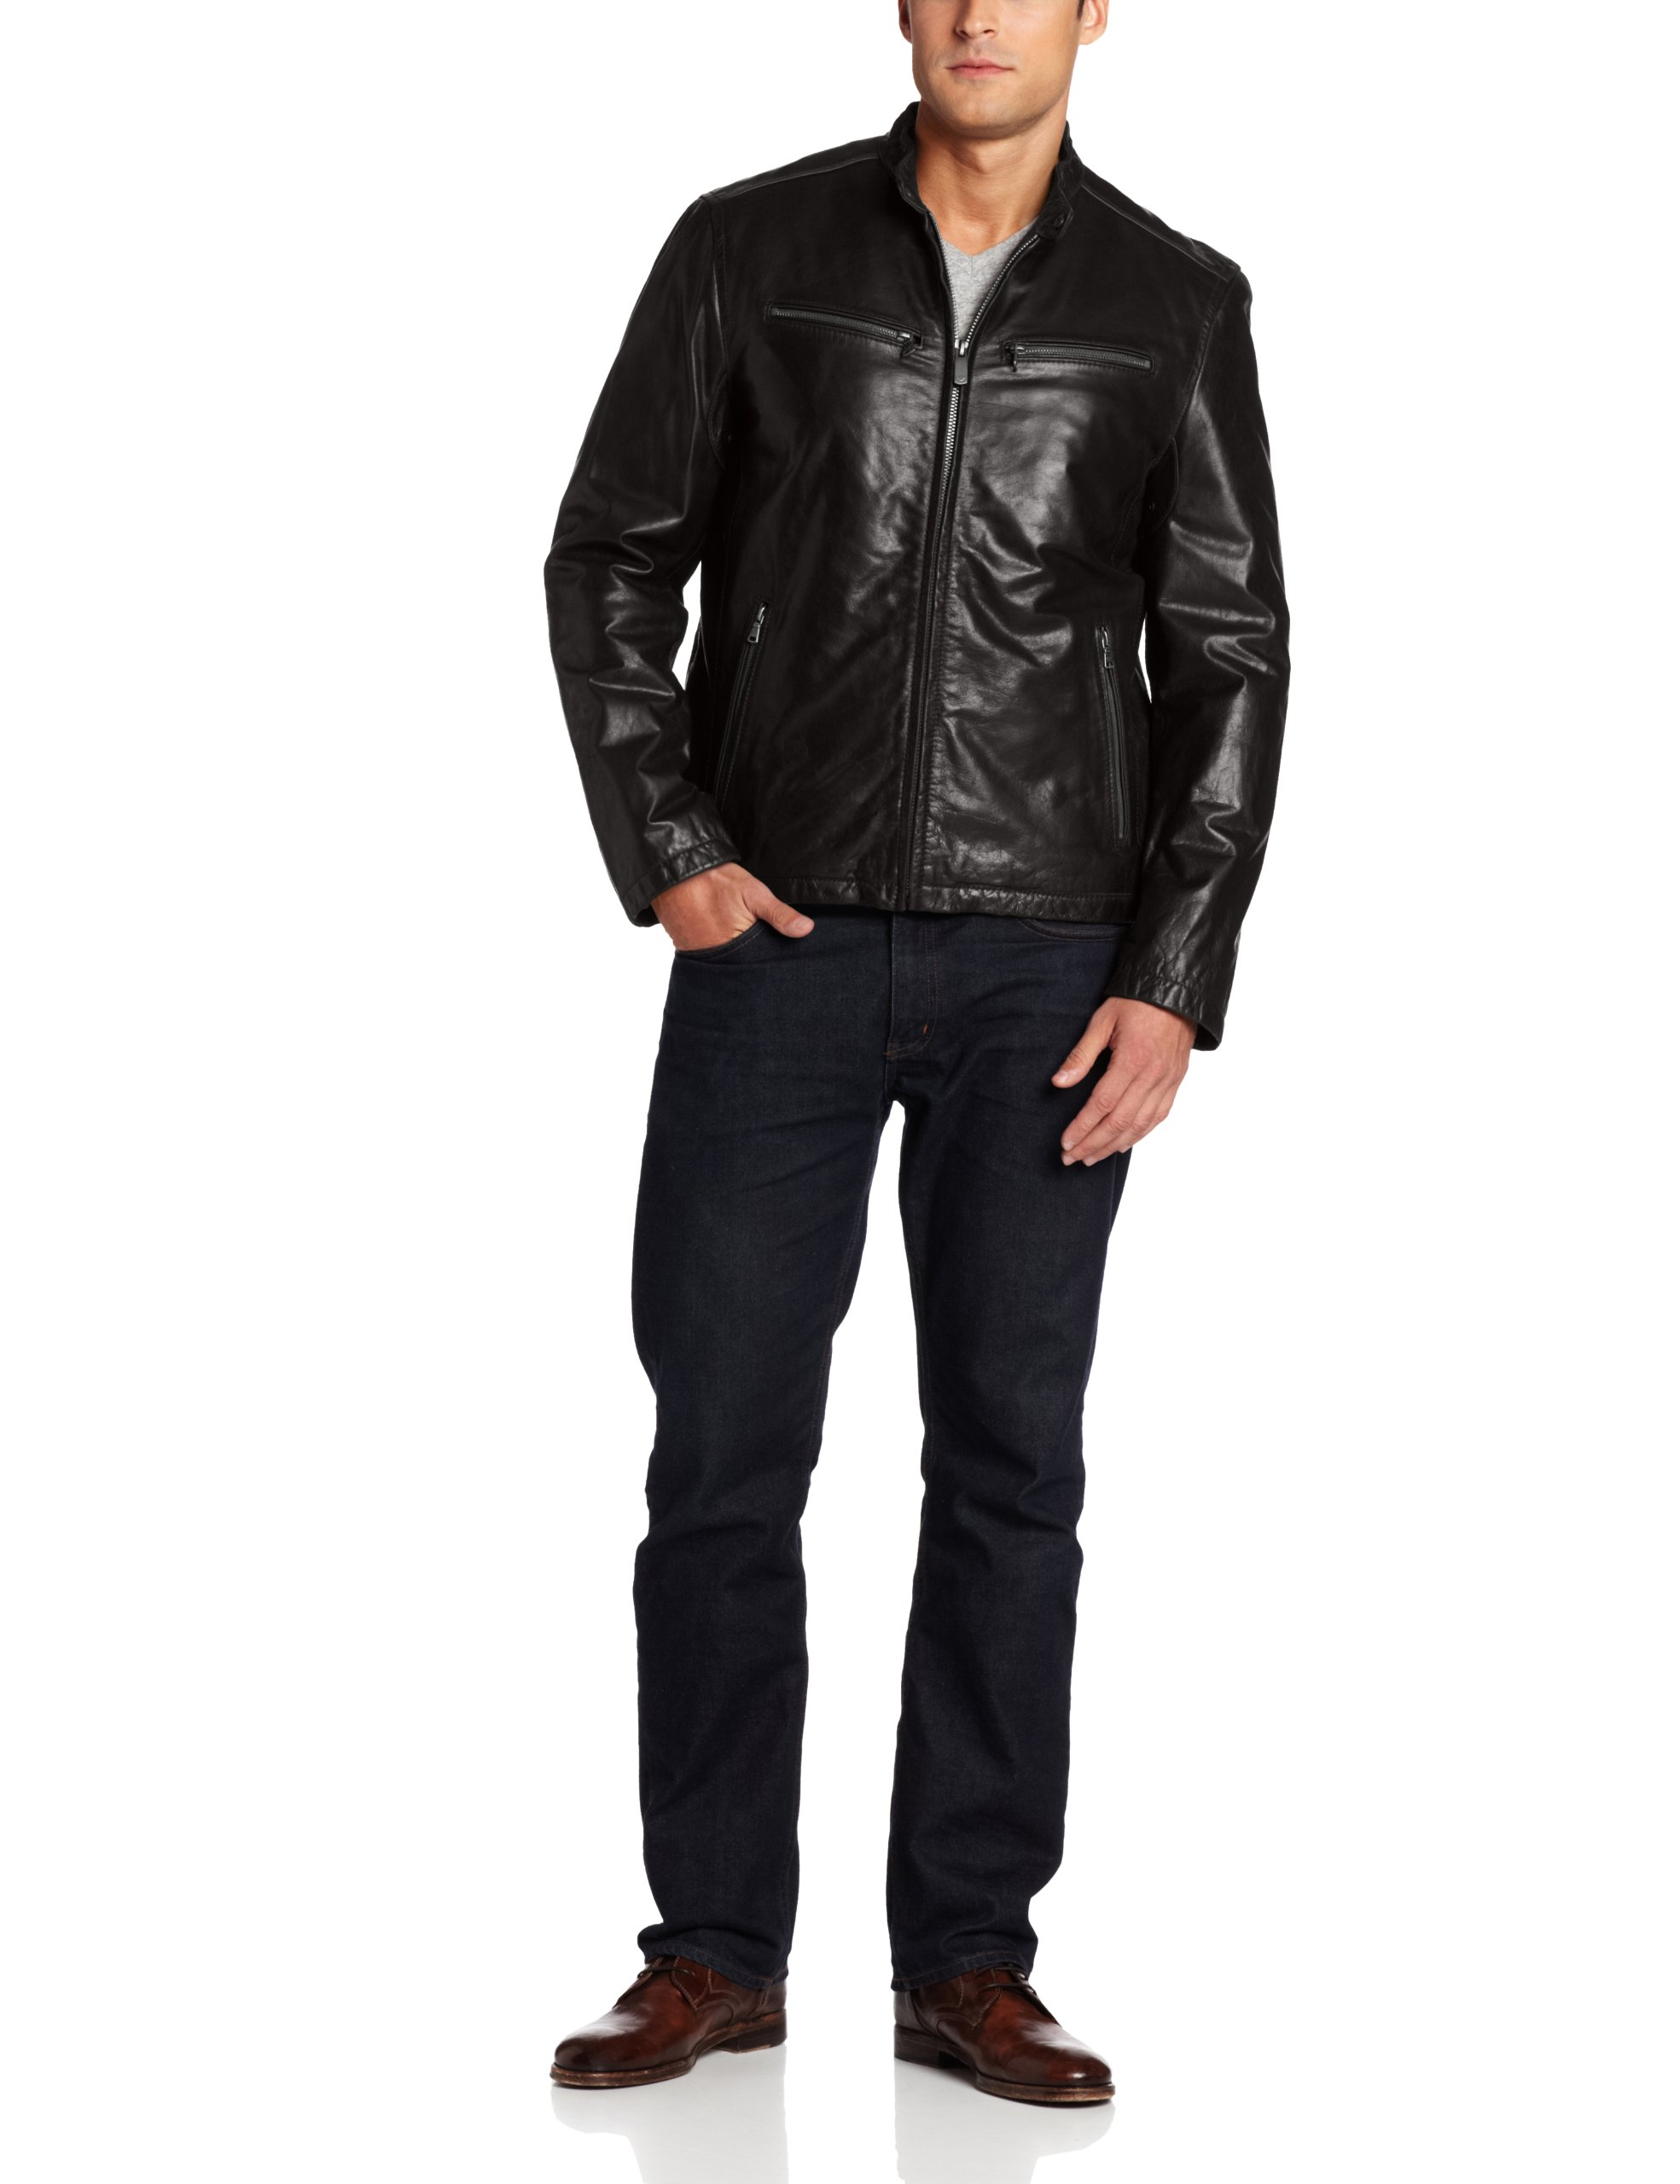 Dockers Men's Washed Leather Racer Jacket, Black, Large by Dockers